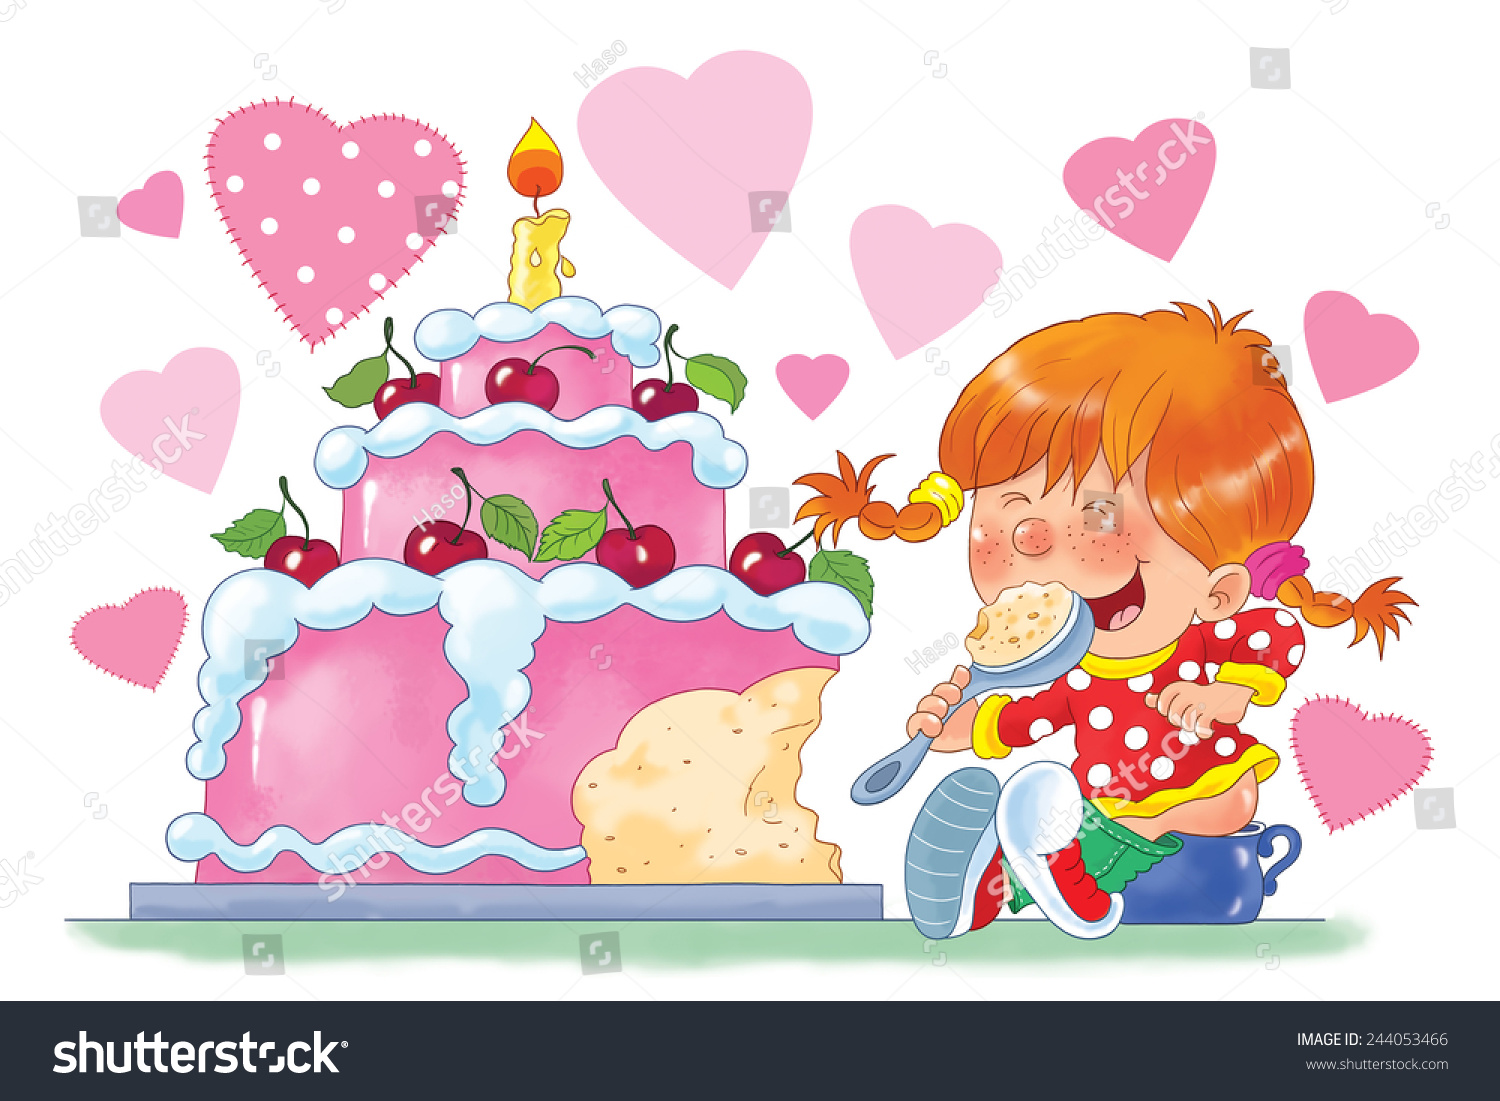 Birthday greeting card little girl sitting stock illustration birthday greeting card little girl sitting on the pot eating her birthday cake kristyandbryce Image collections